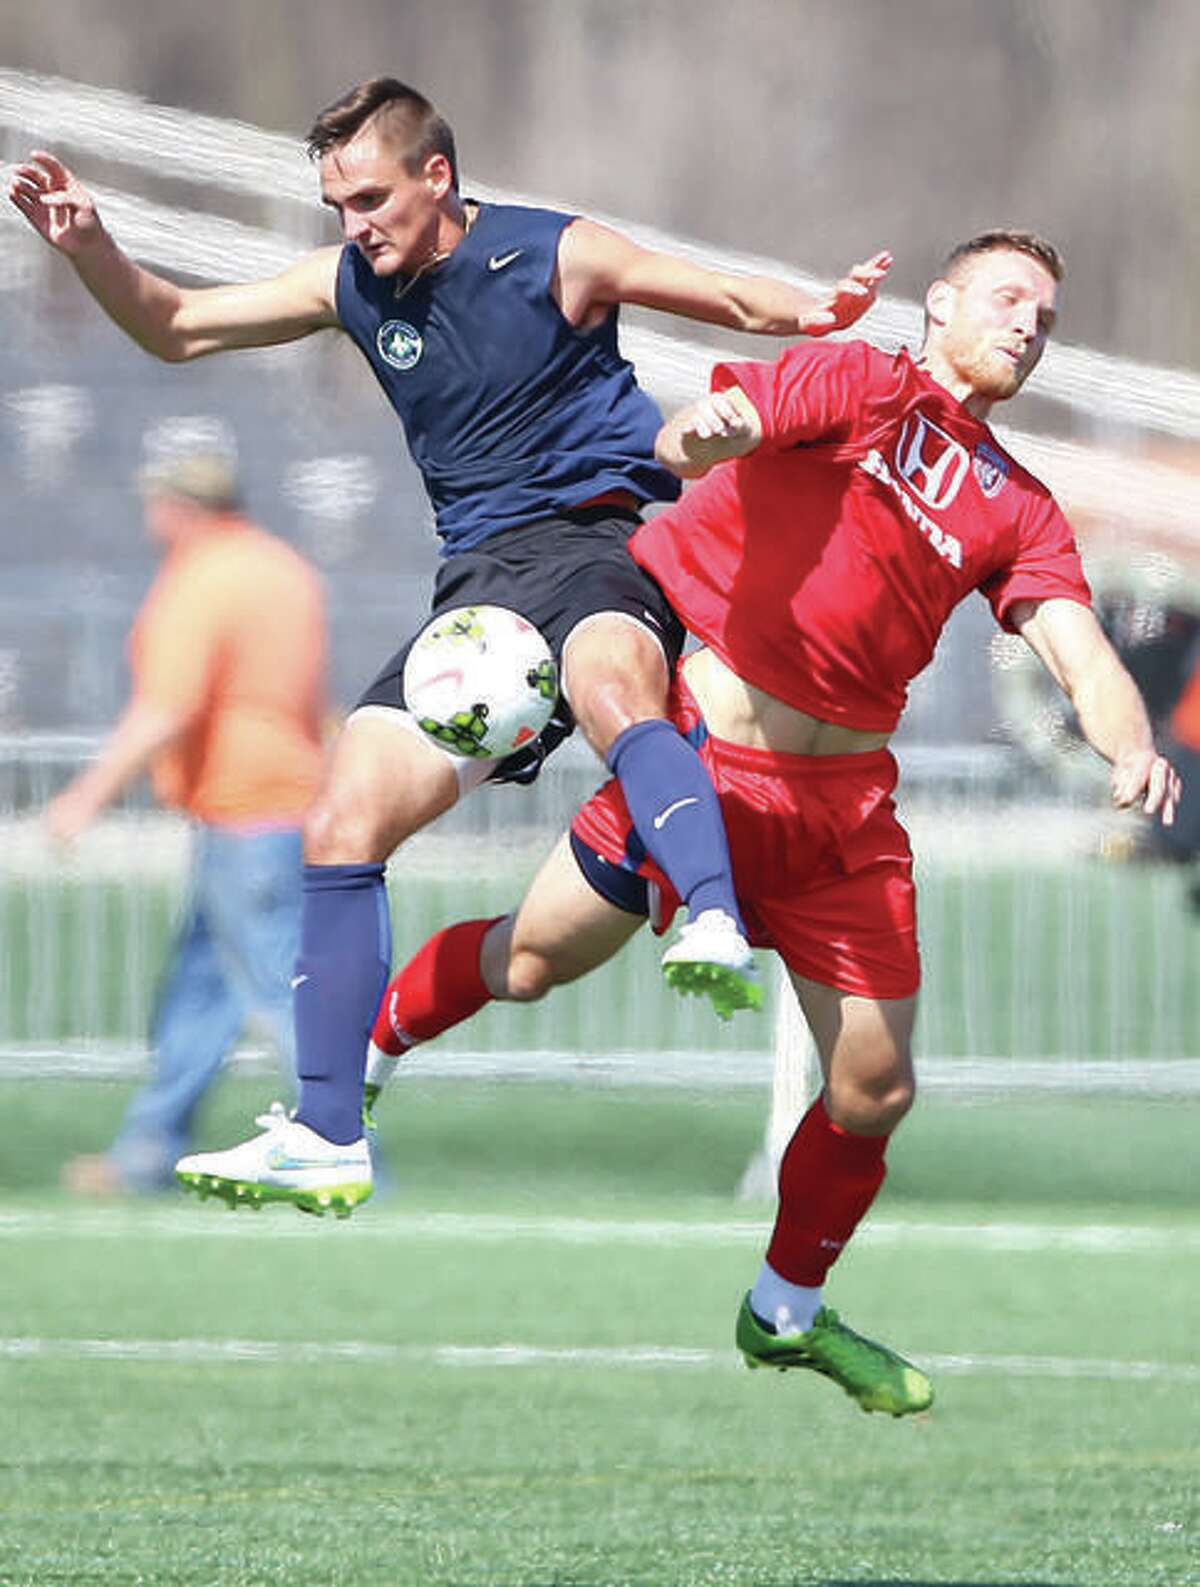 Saint Louis FC's Sam Fink, left, goes up for a ball with a forward from the Indianapolis Eleven in a friendly match in 2015 at St. Louis Soccer Park.